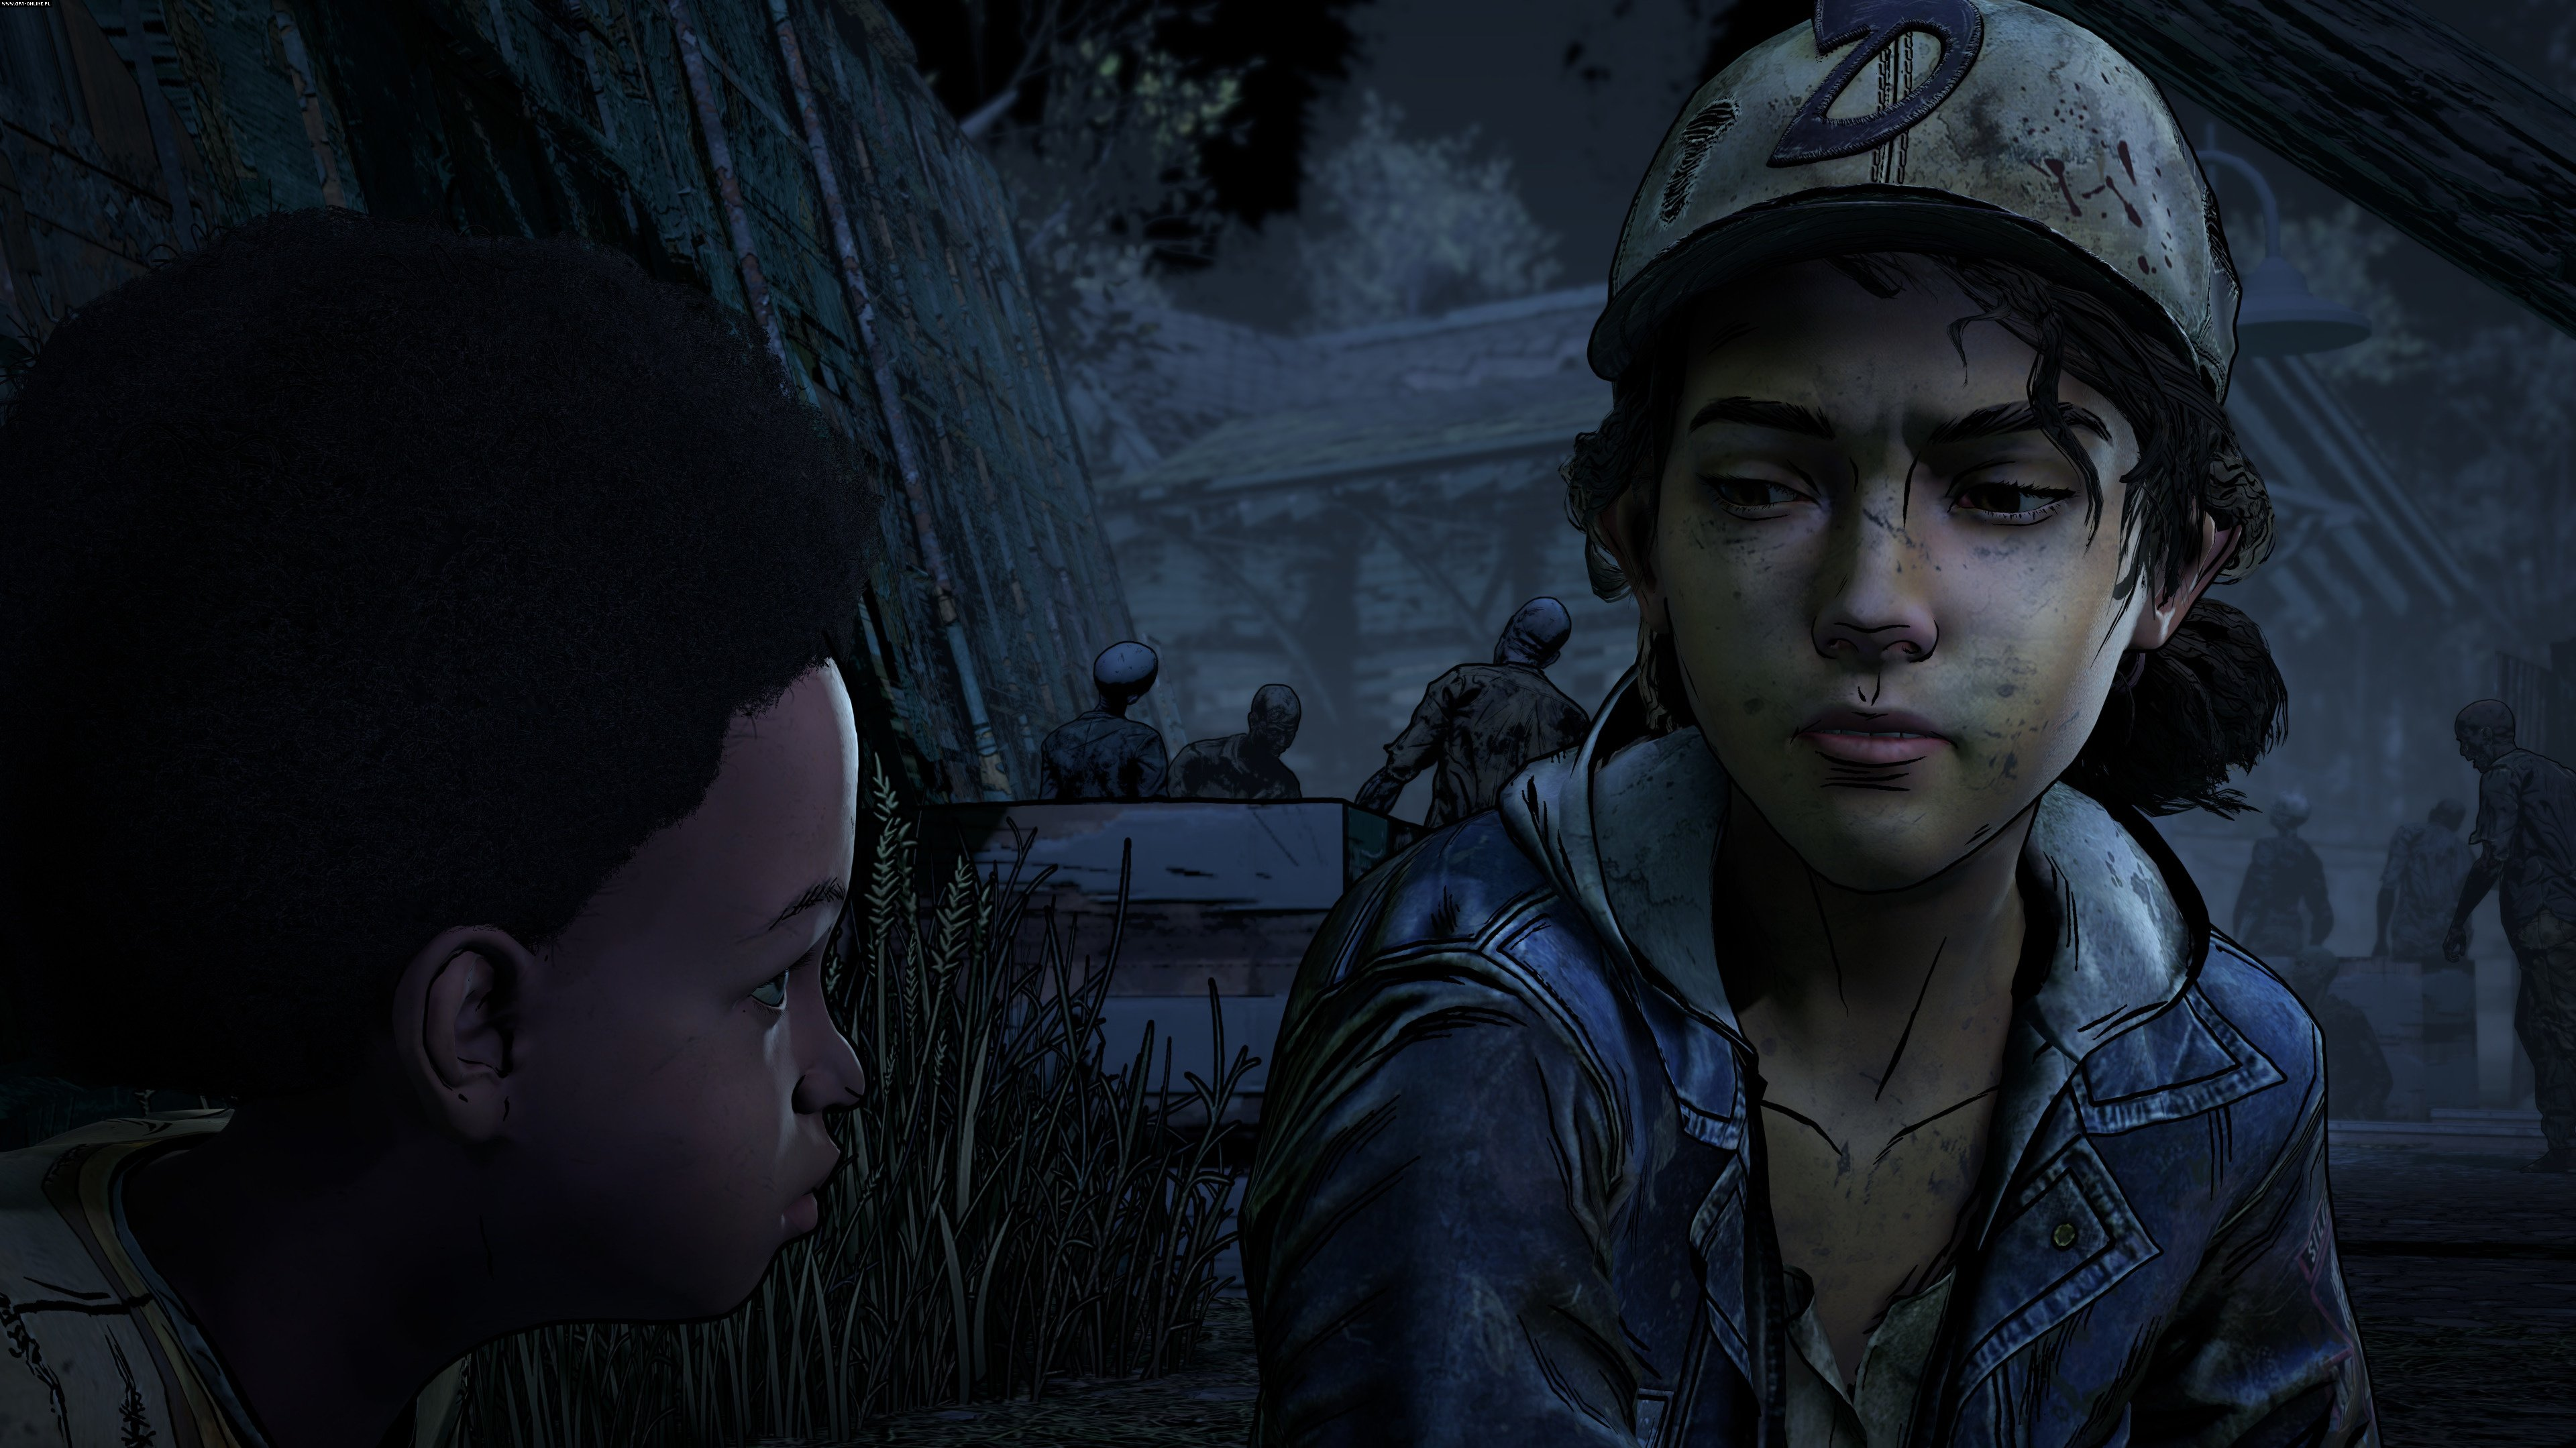 The Walking Dead: The Final Season PC, PS4, XONE, AND, iOS, Switch Gry Screen 28/29, Telltale Games